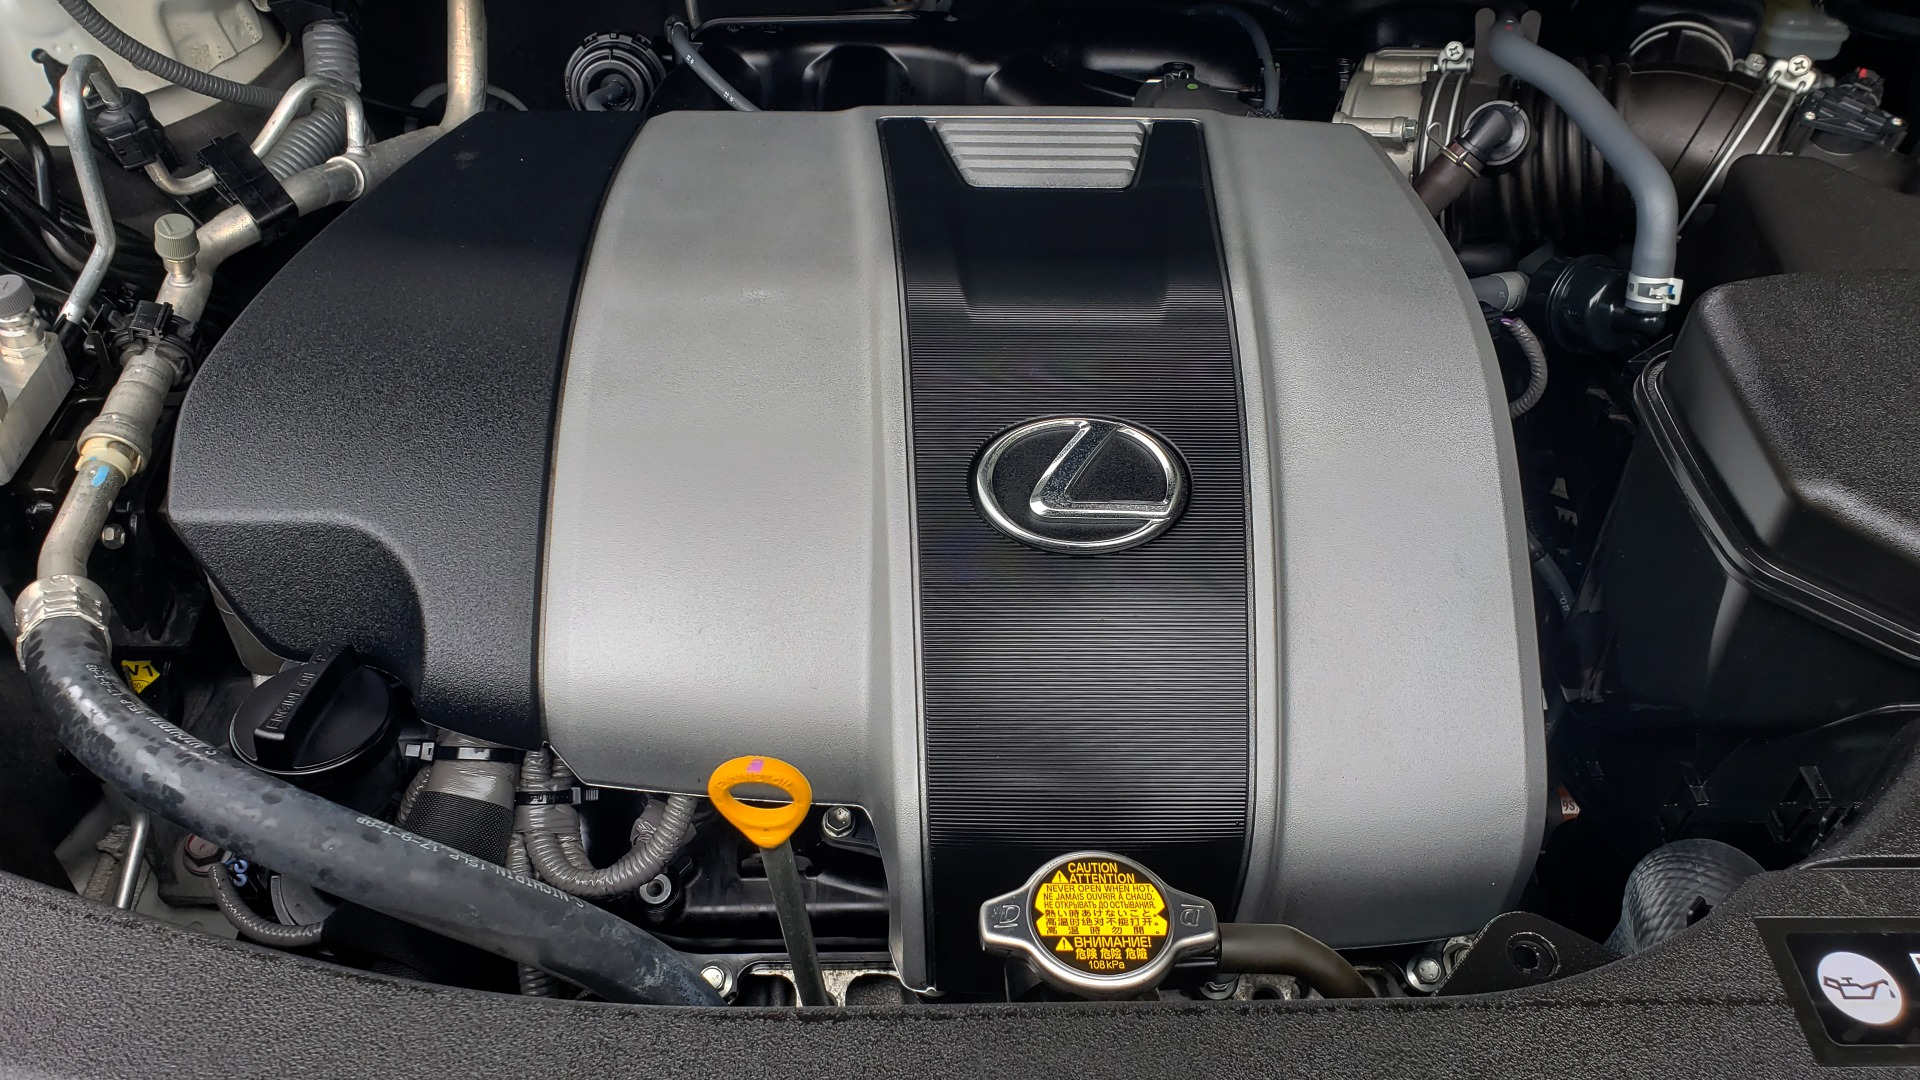 Used 2016 Lexus RX 350 FWD / 4-DR / 3.5L V6 / 8-SPD AUTO / LEATHER / REARVIEW for sale $31,995 at Formula Imports in Charlotte NC 28227 13